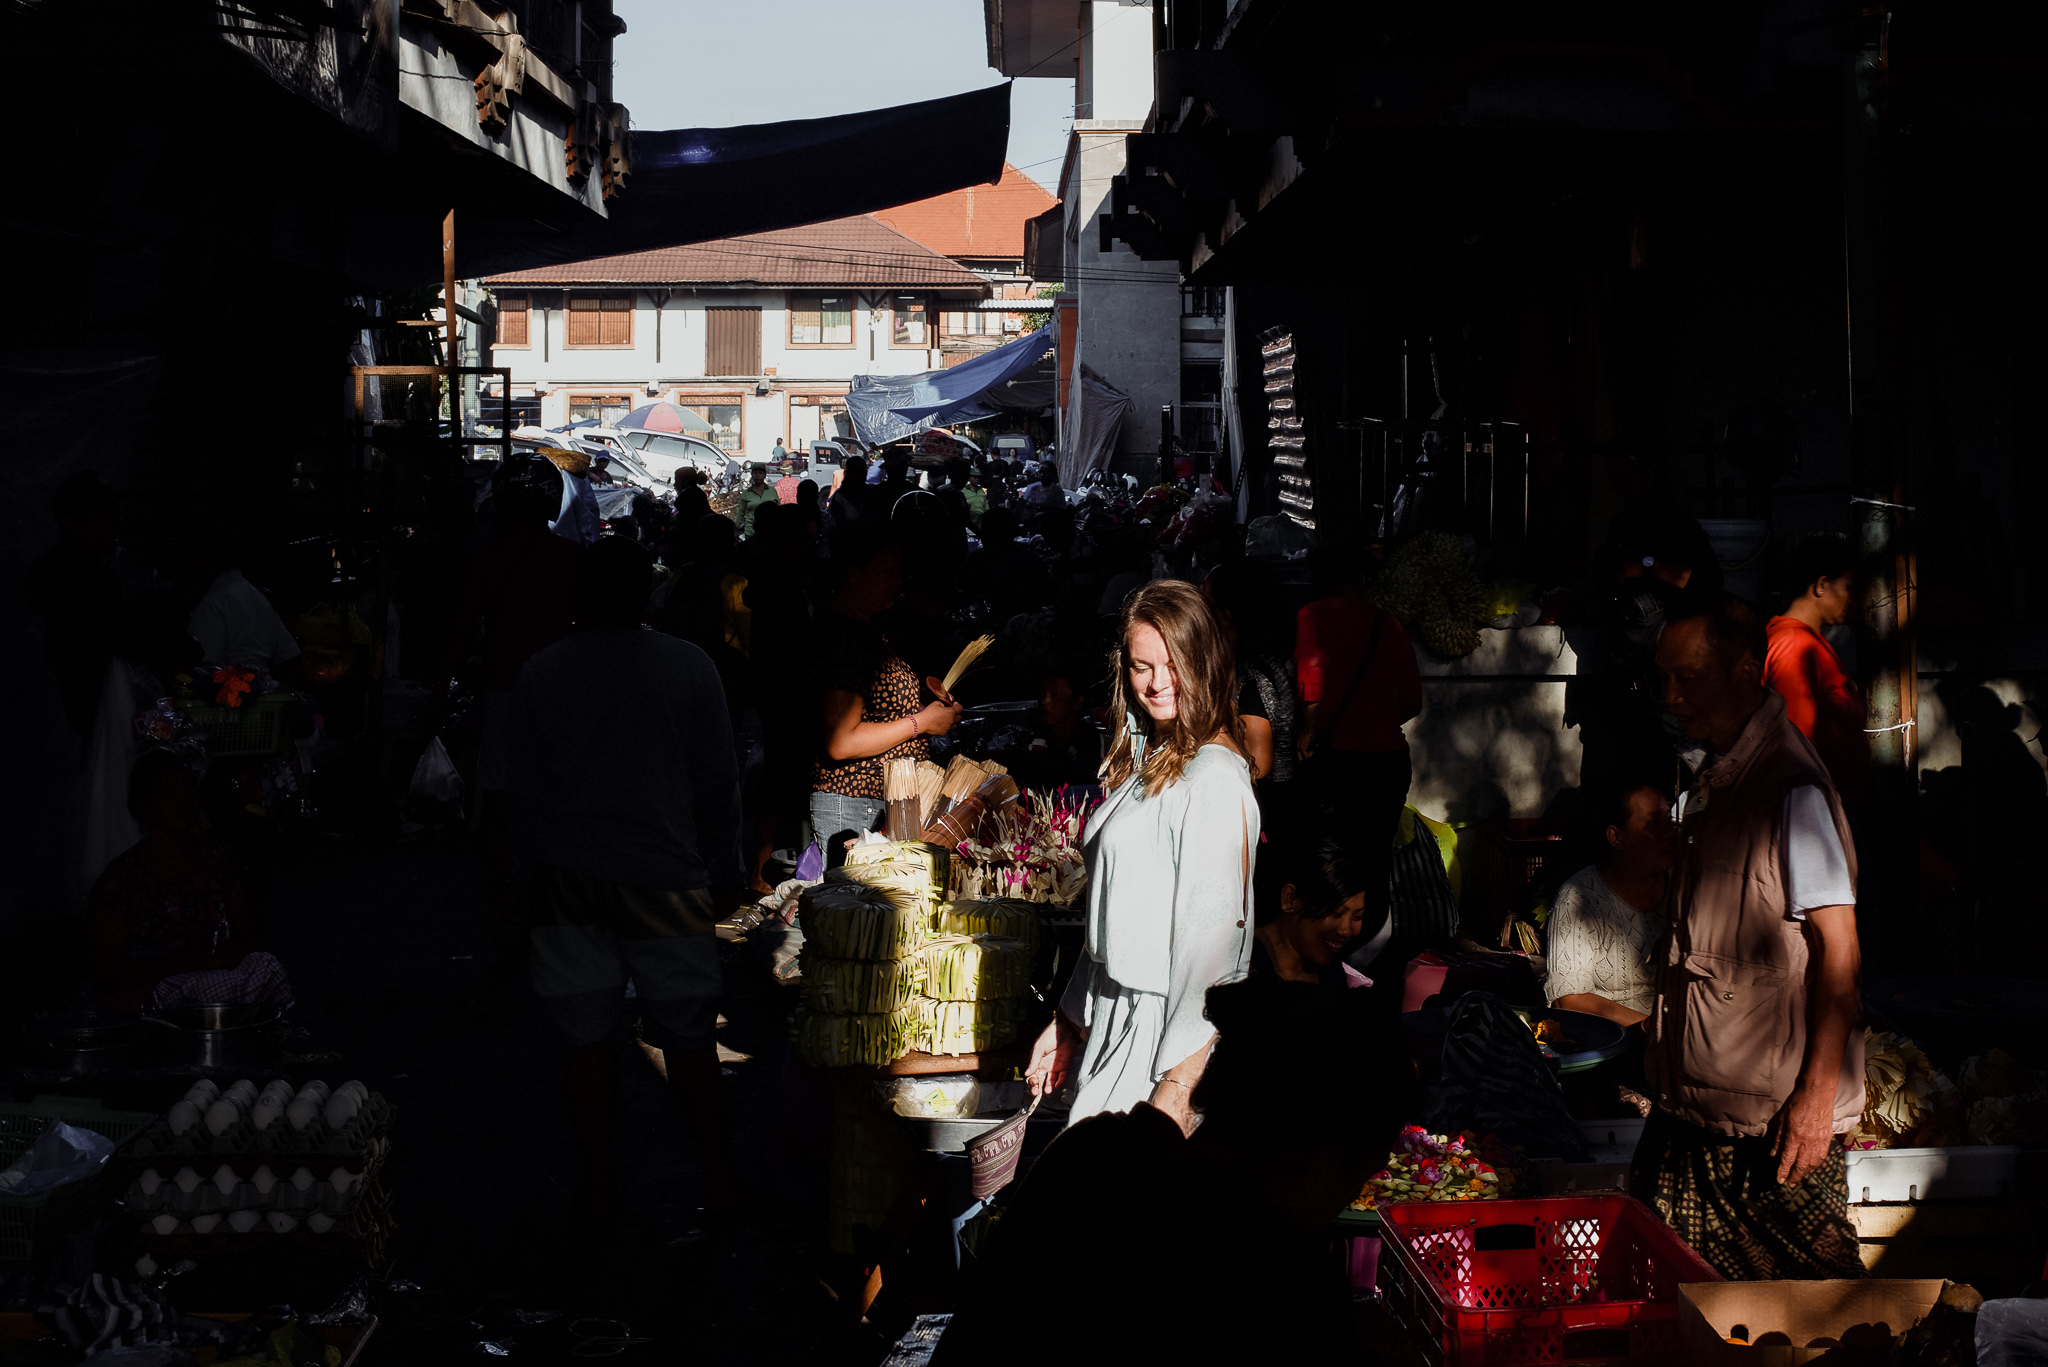 Chasing harsh light with Soul Therapist, Dia at Pasar Ubud. Bali Street Photographer